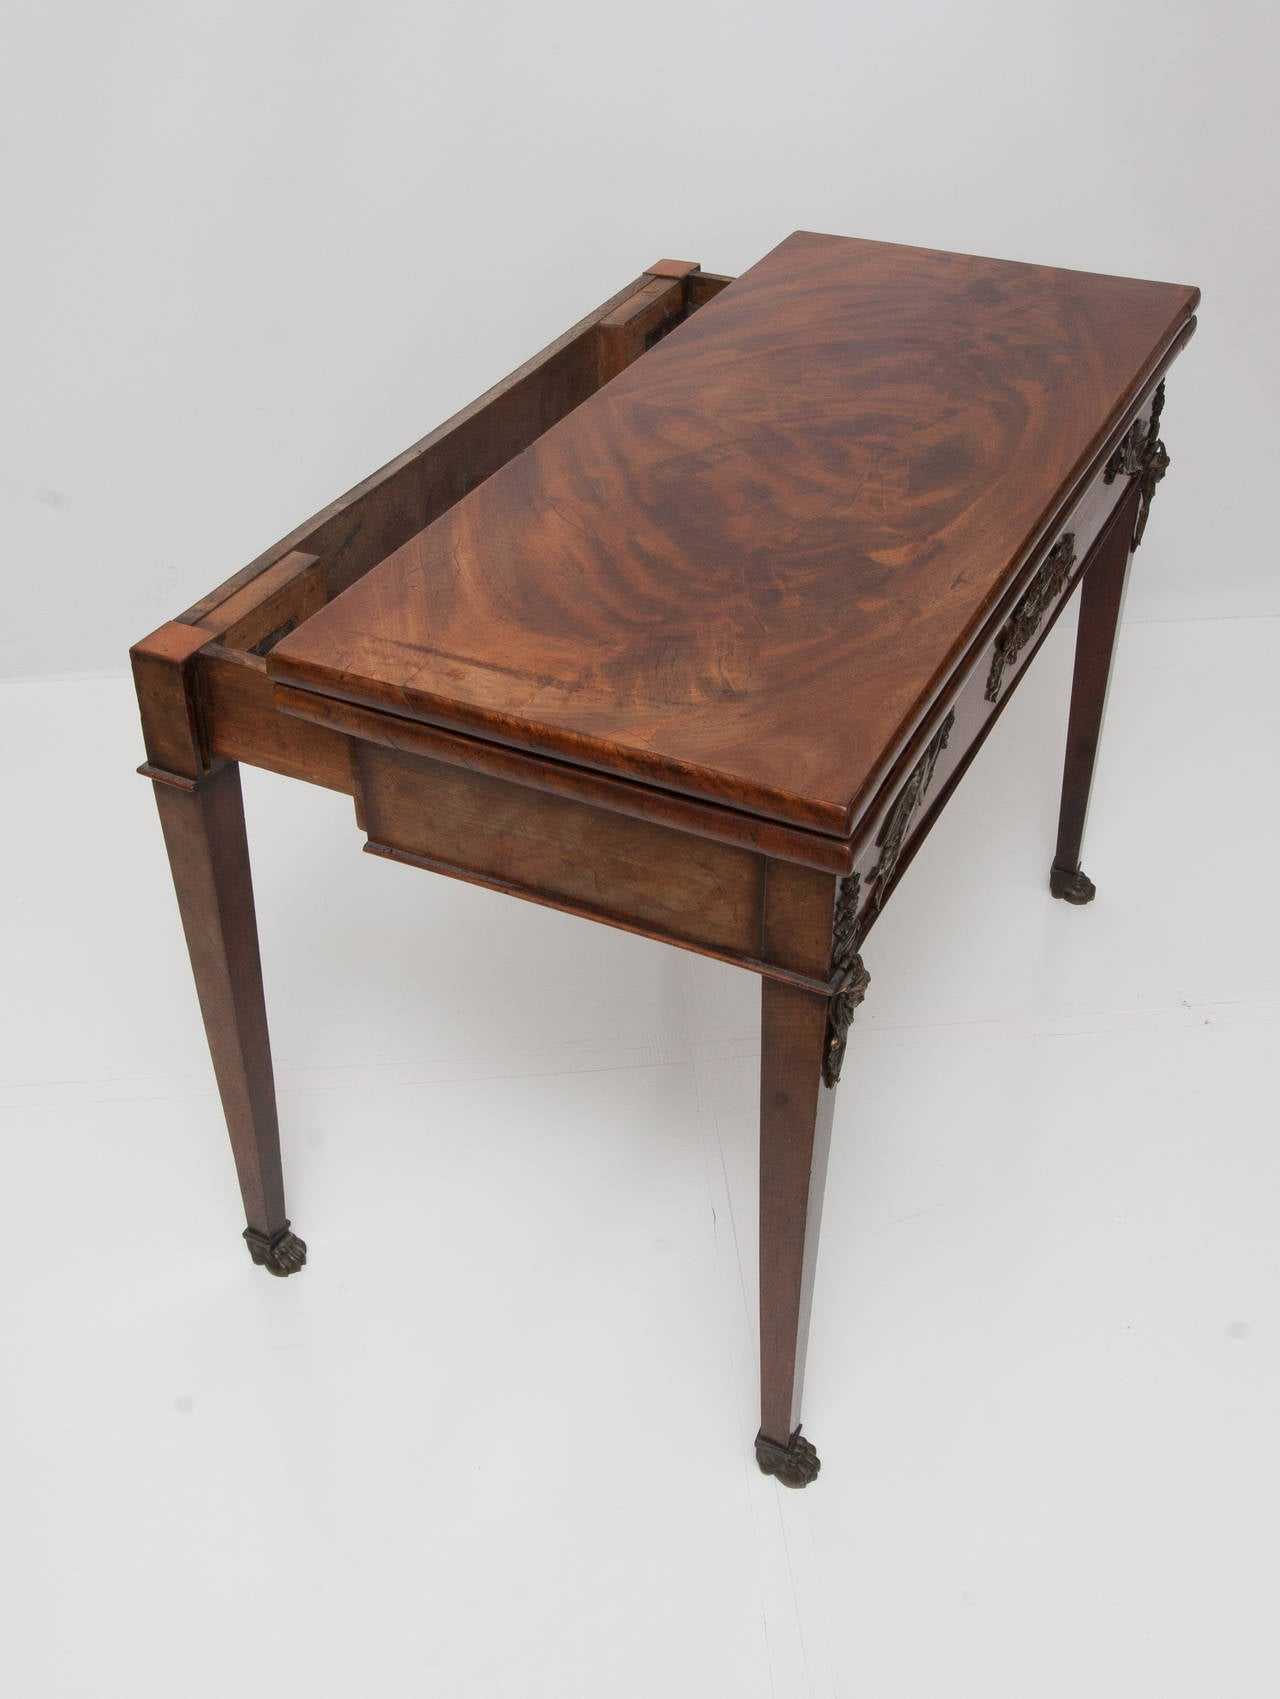 English antique mahogany game table at 1stdibs for 13 in 1 game table